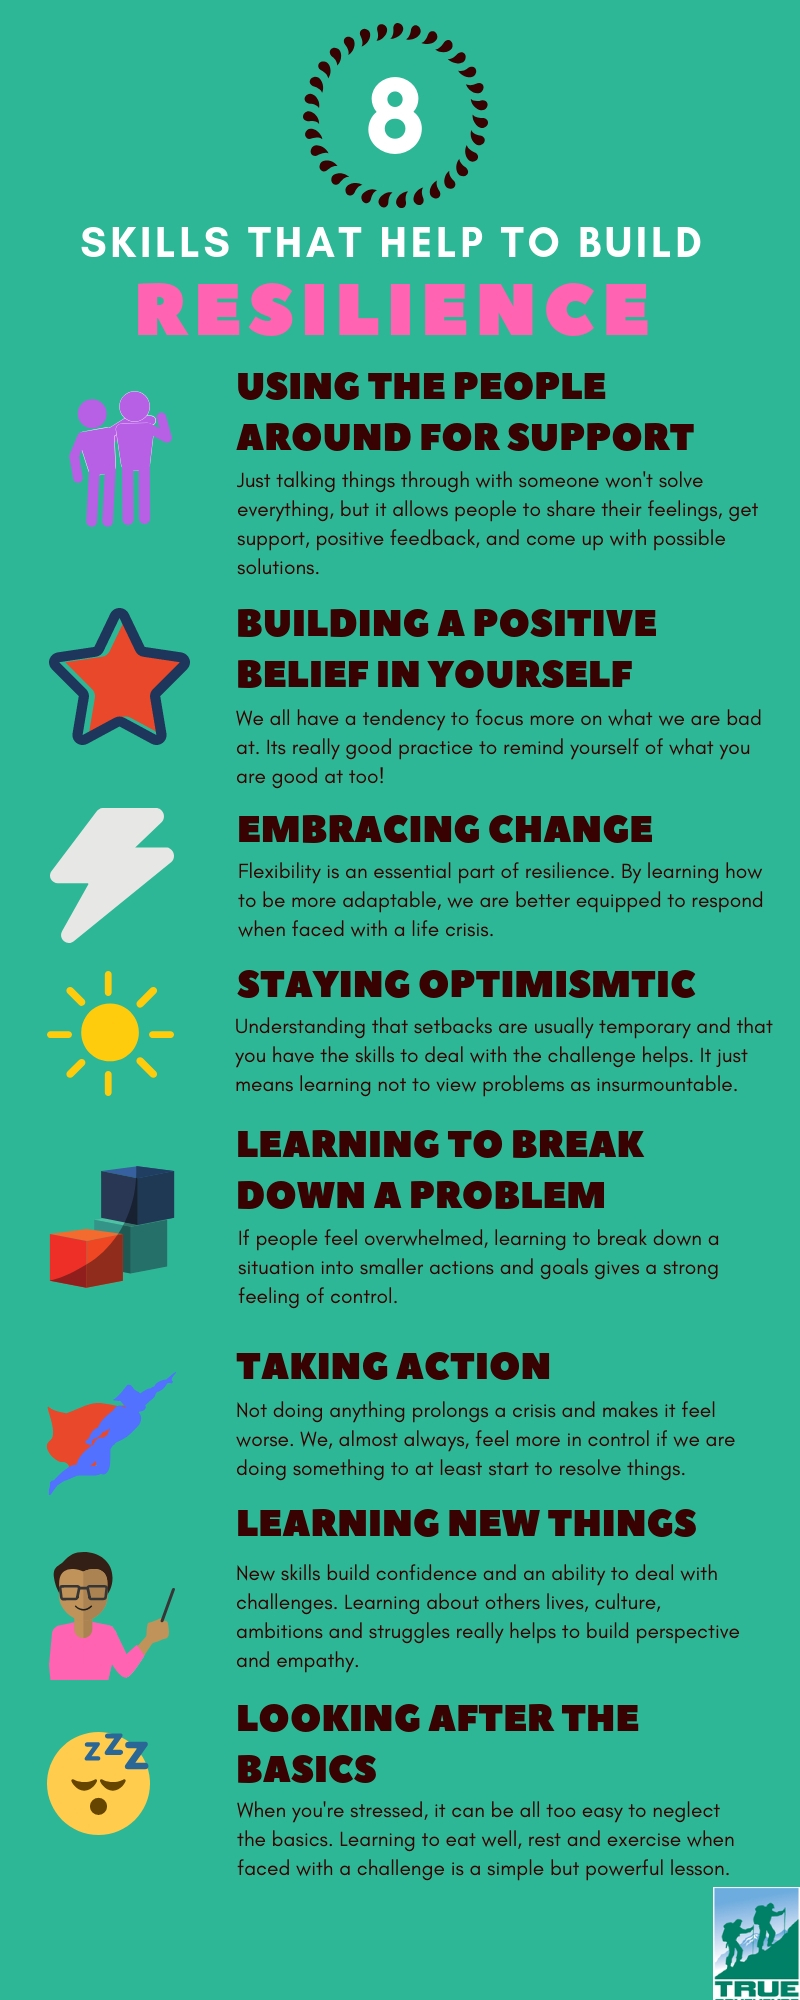 Resilience infographic